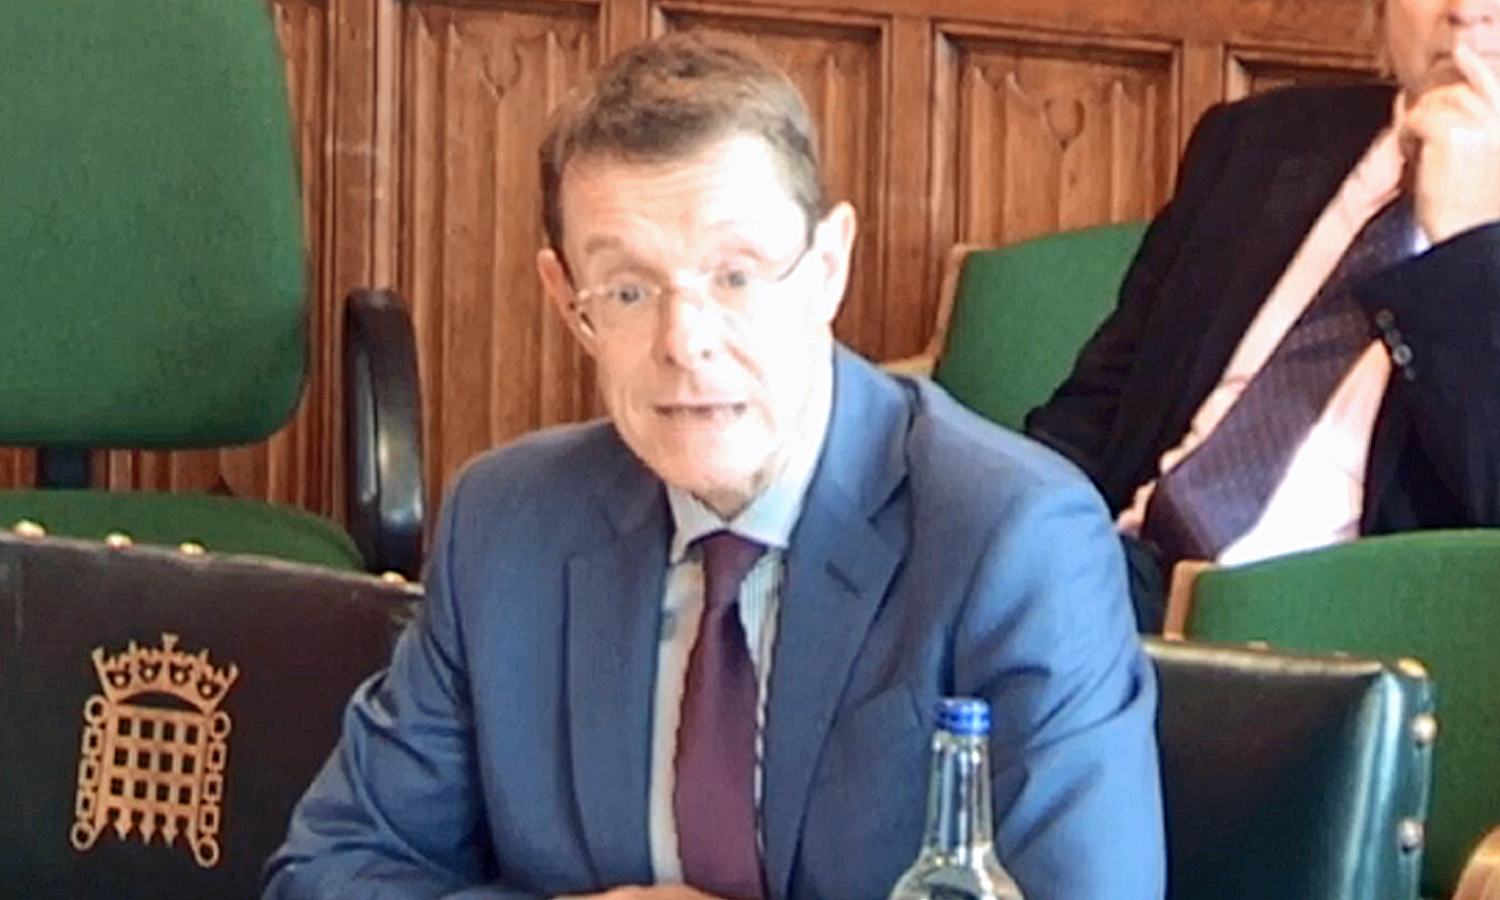 Andy Street tells Parliament of West Midlands' Brexit priorities